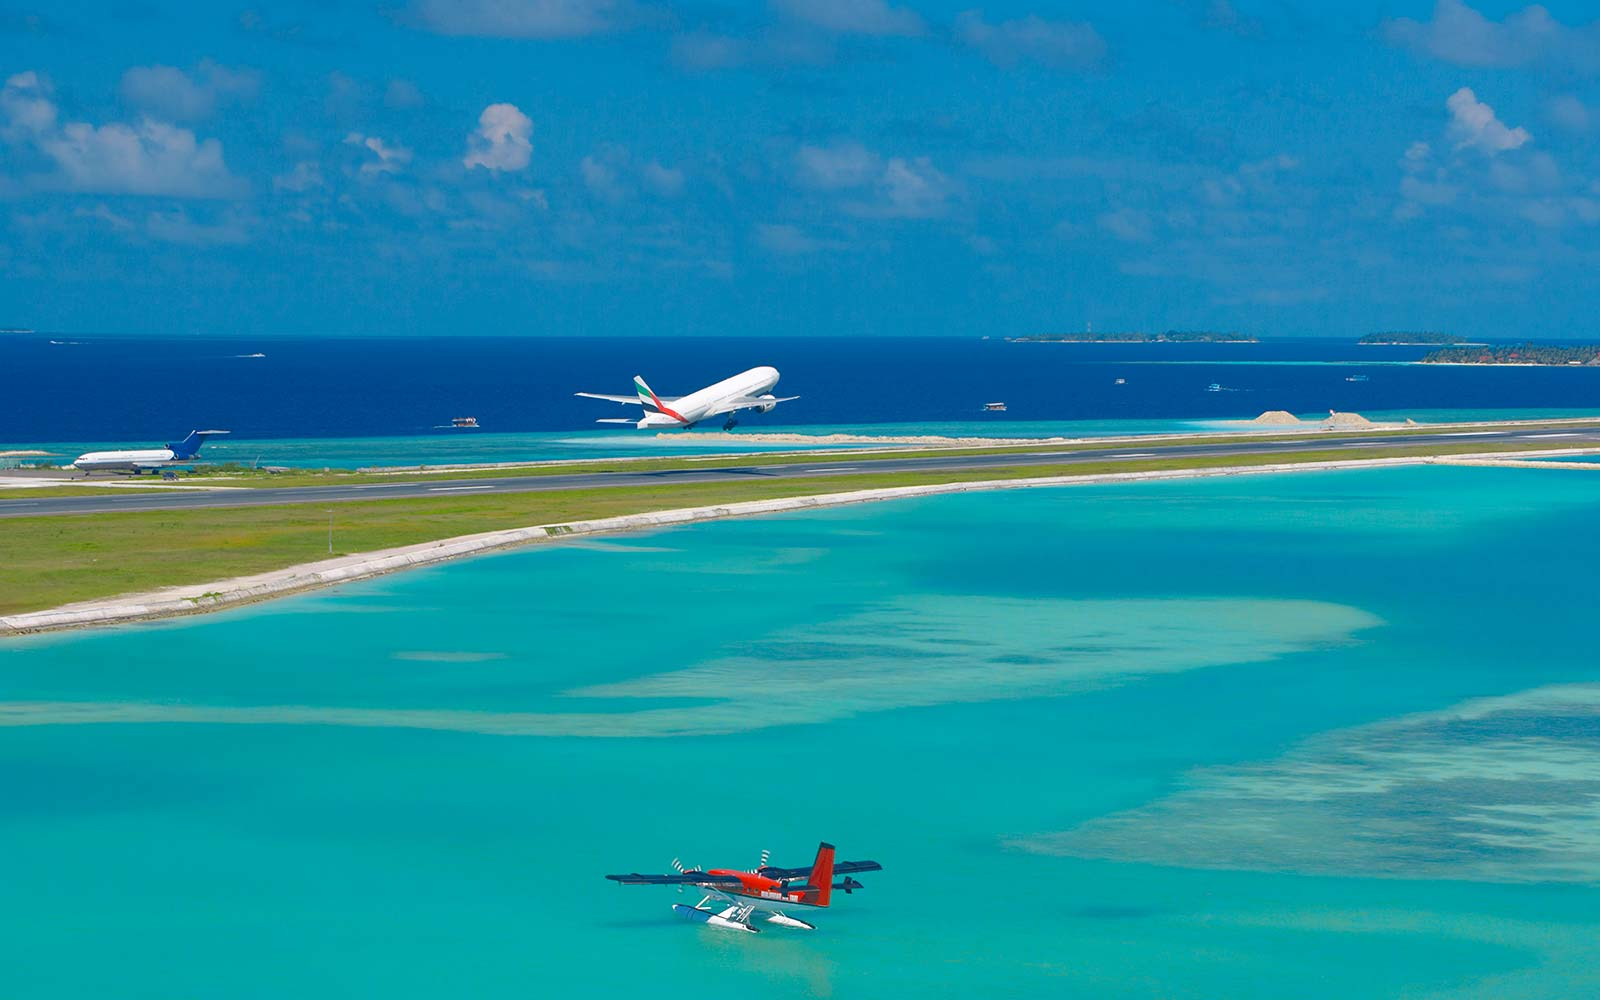 Male International Airport, Maldives